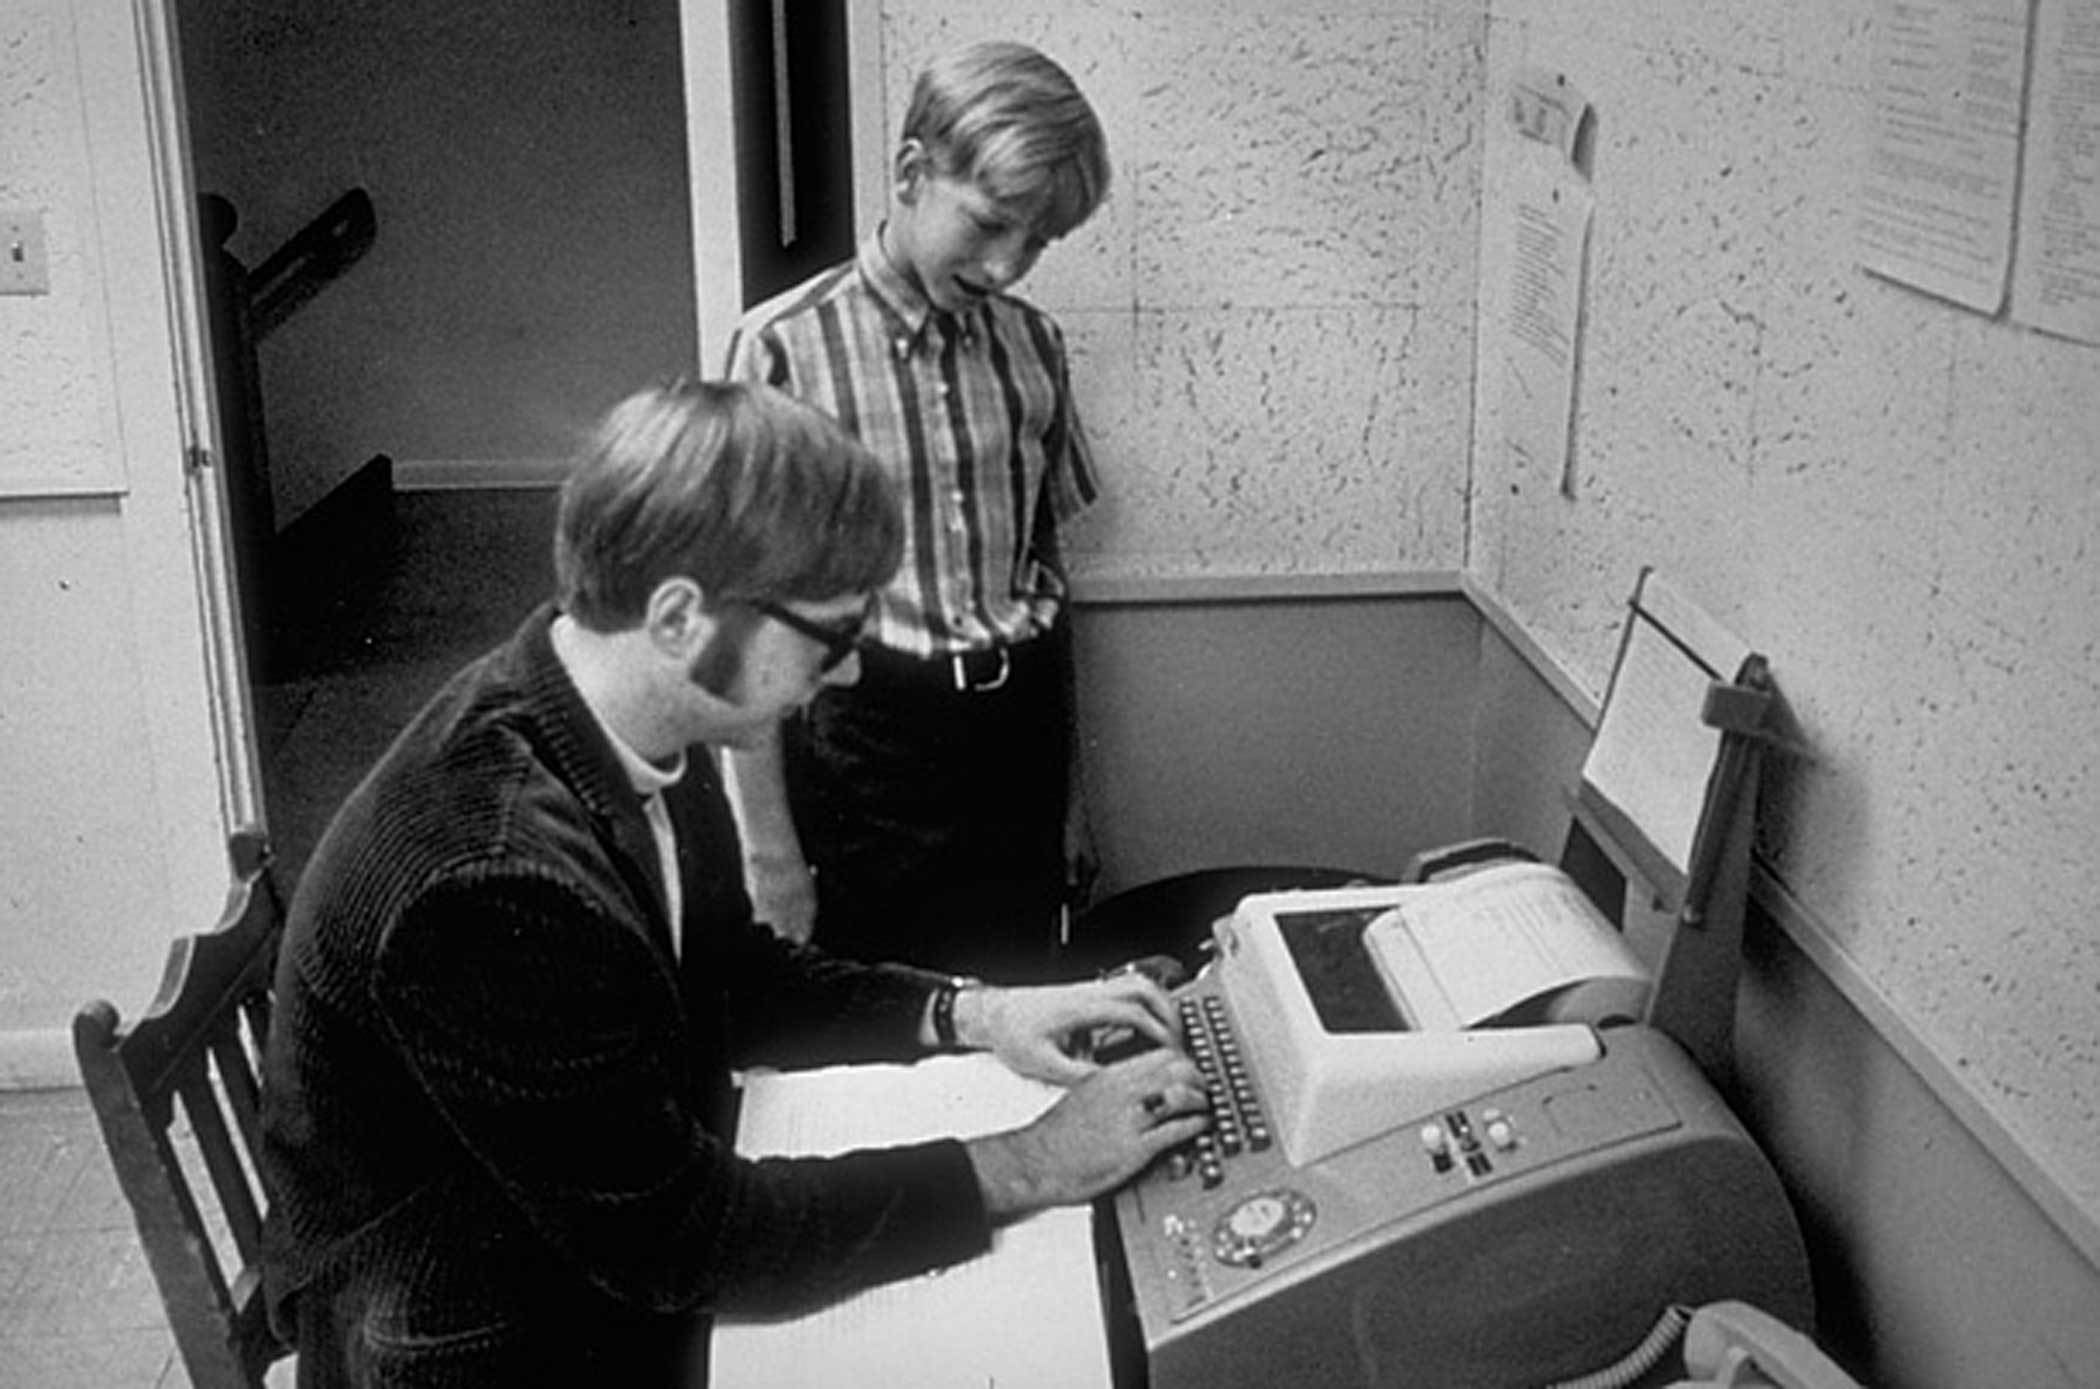 Gates watches his friend and future Microsoft co-founder Paul Allen typing on a teletype terminal at the Lakeside School in Seattle in 1968. Gates was 13 when he entered the exclusive prep school, which was around the time this photo was taken.